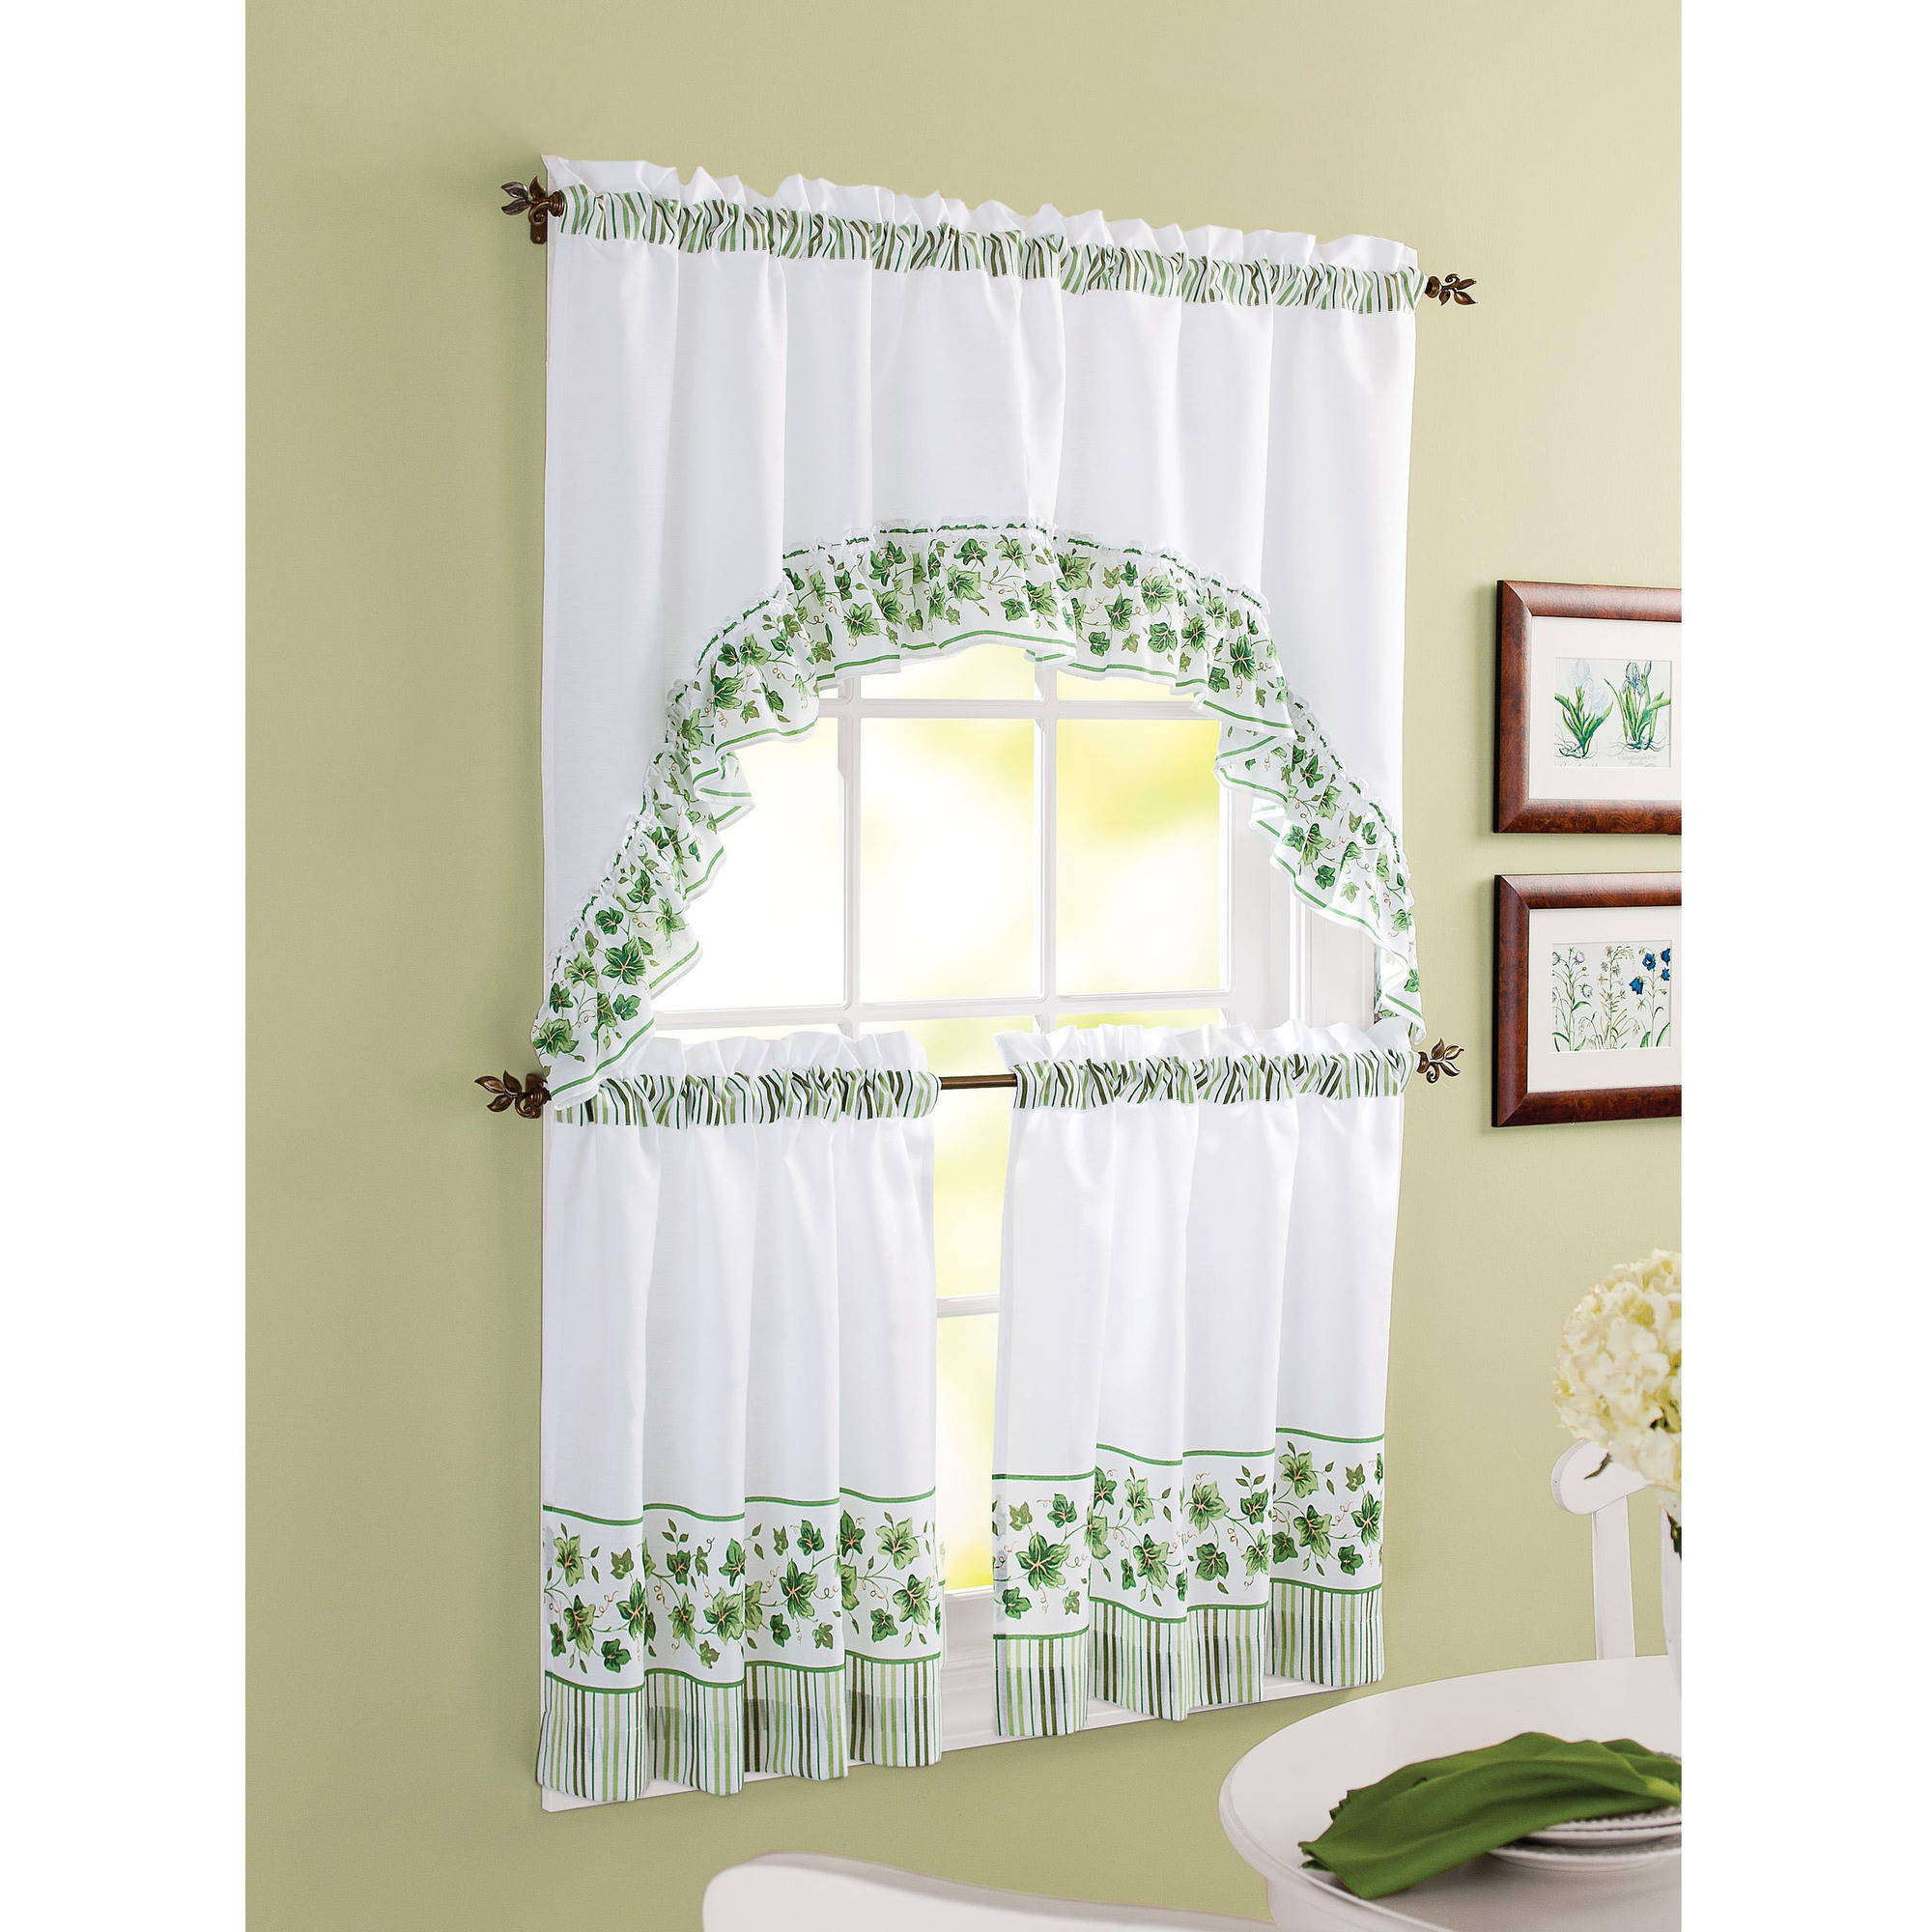 Grand Coffee Embroidered Tier And Swag Kitchen Curtain Set Inside Coffee Embroidered Kitchen Curtain Tier Sets (View 10 of 20)